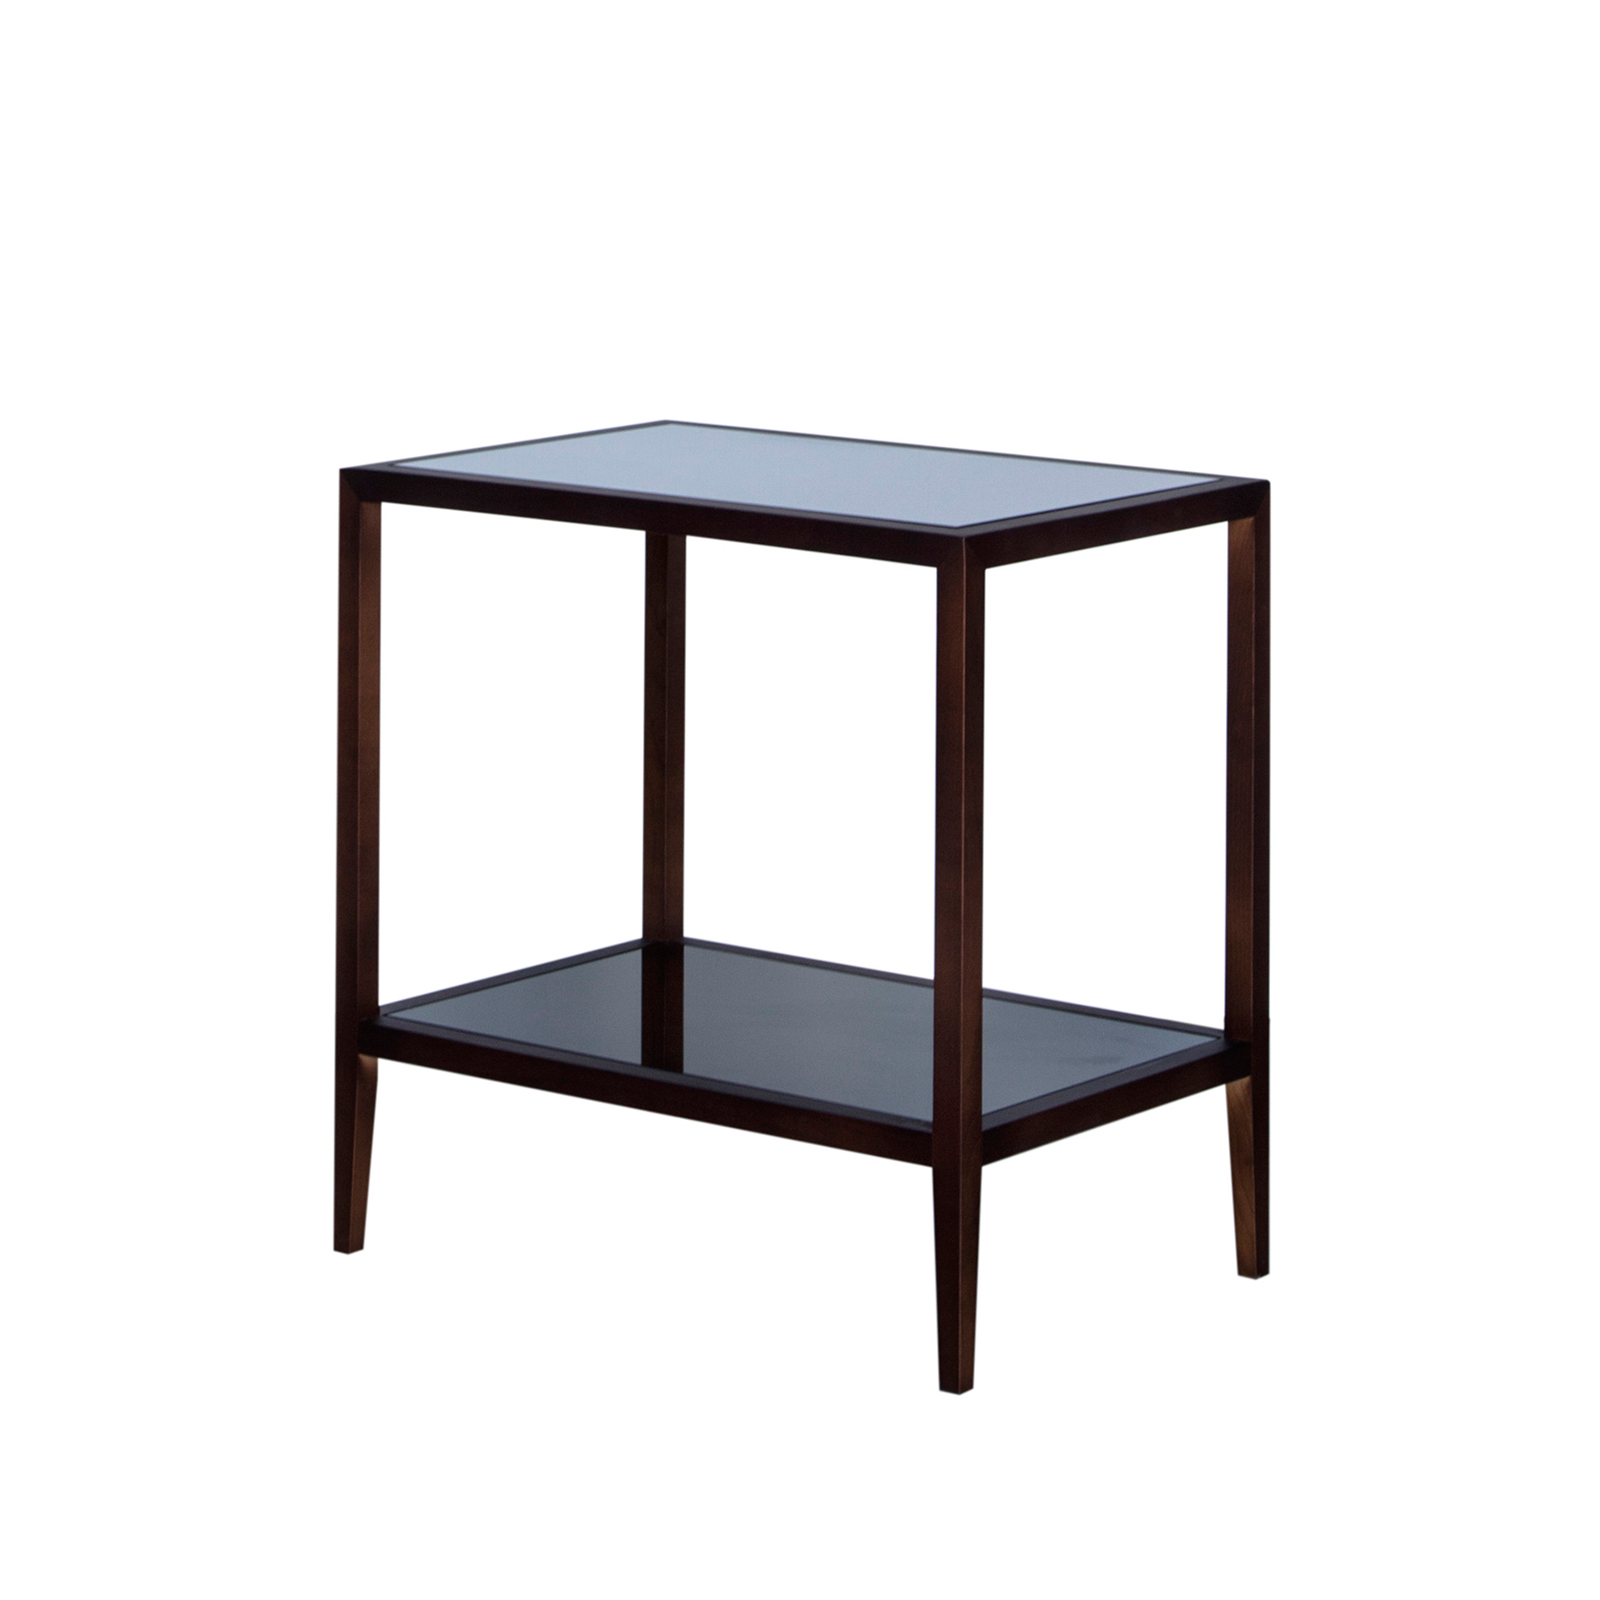 Cascine-Side-Table-Turini-Werich-Bonham-&-Bonham-01